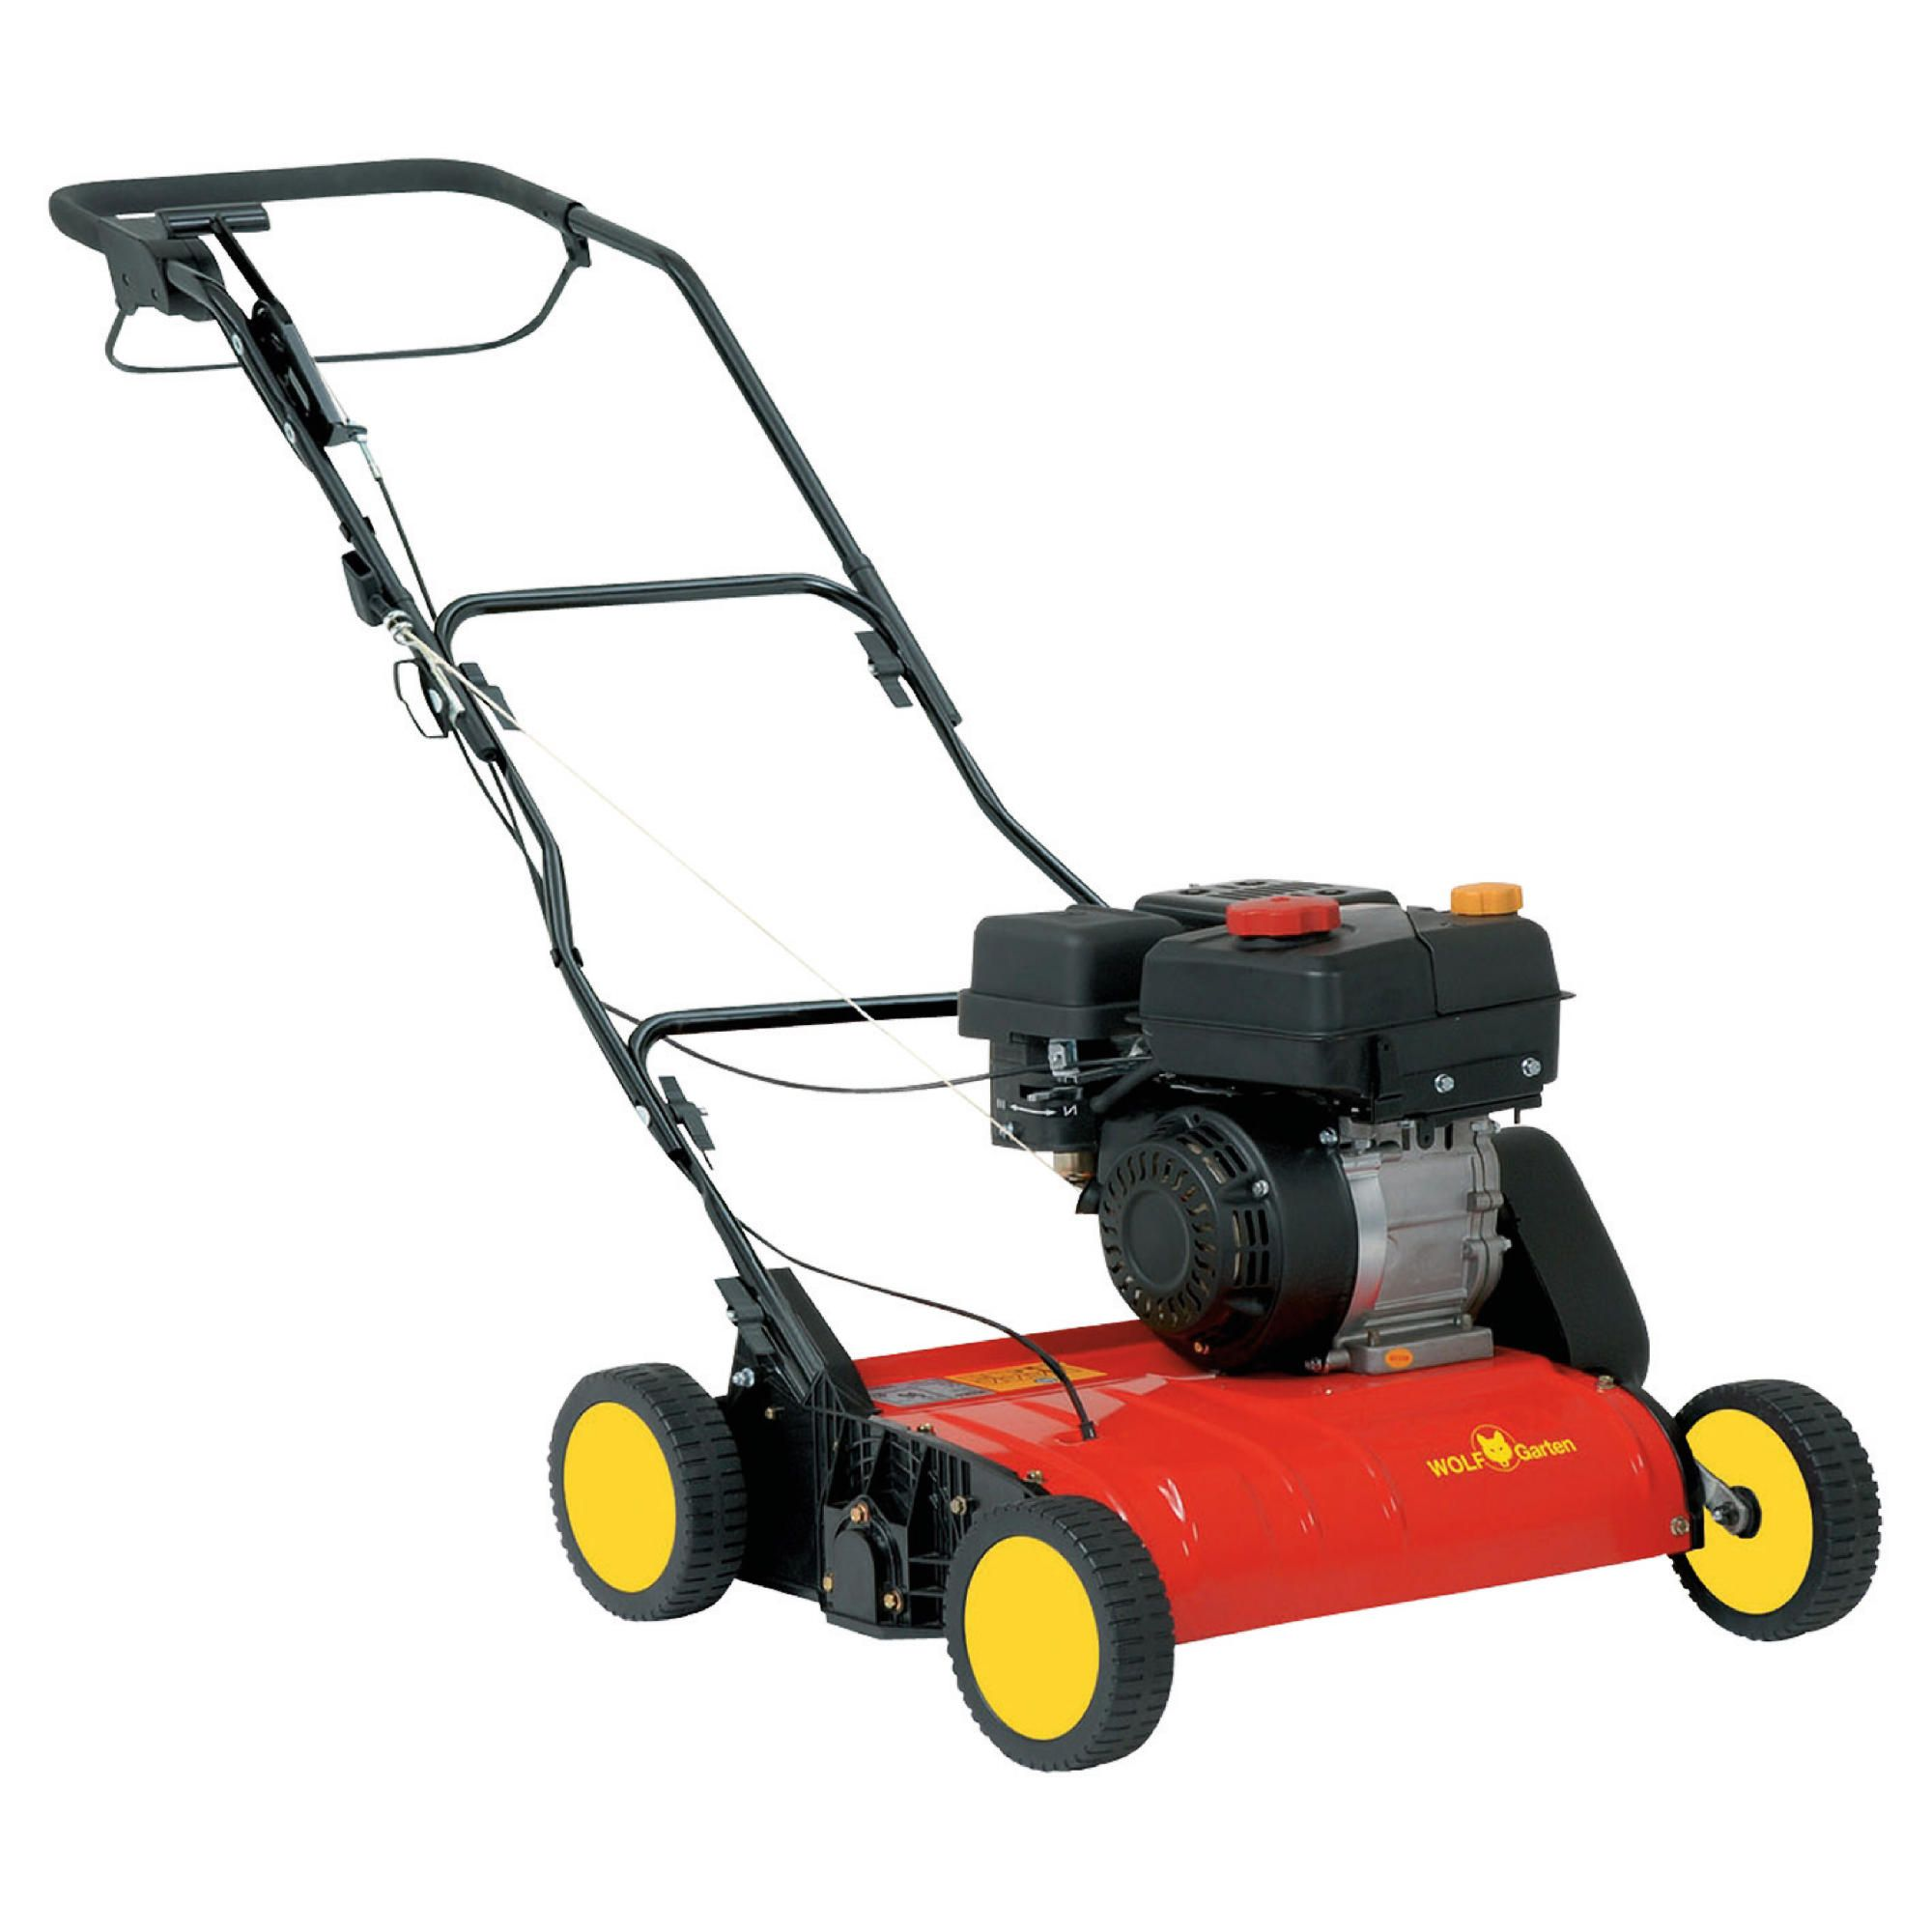 Wolf Petrol Scarifier UV4000B at Tesco Direct